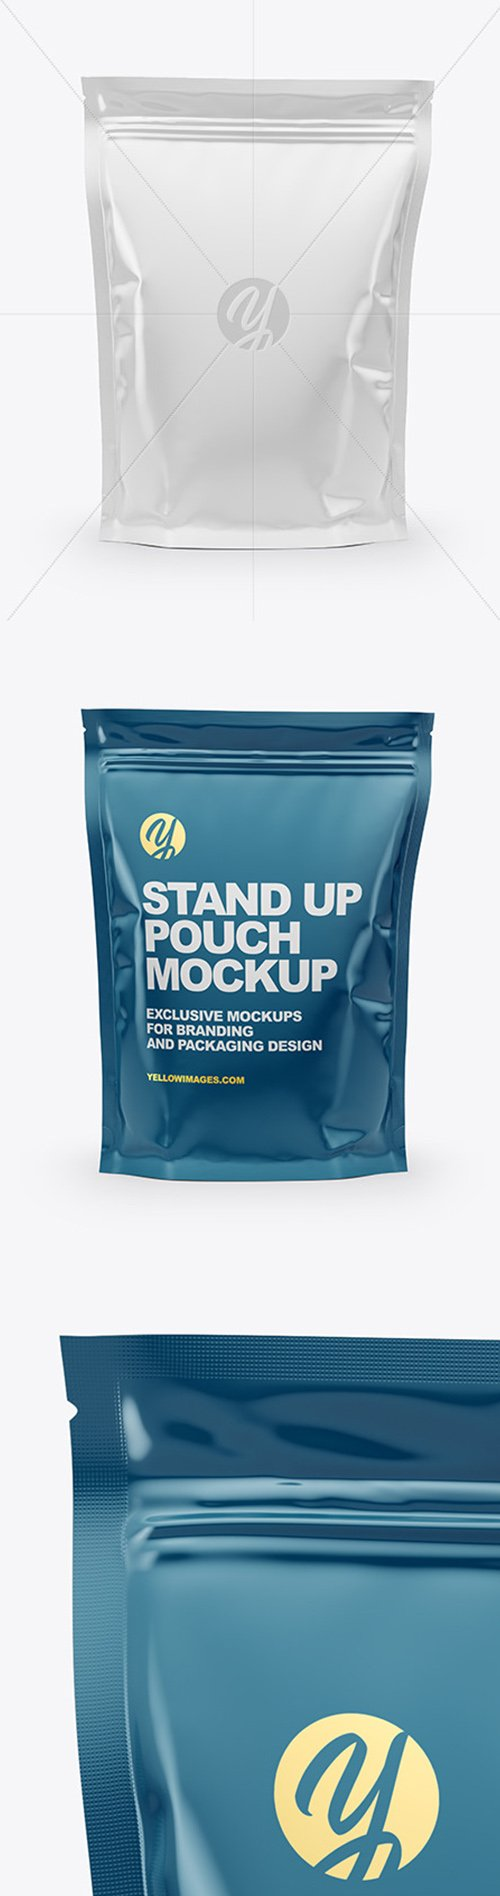 Glossy Stand Up Pouch Mockup 52292 TIF